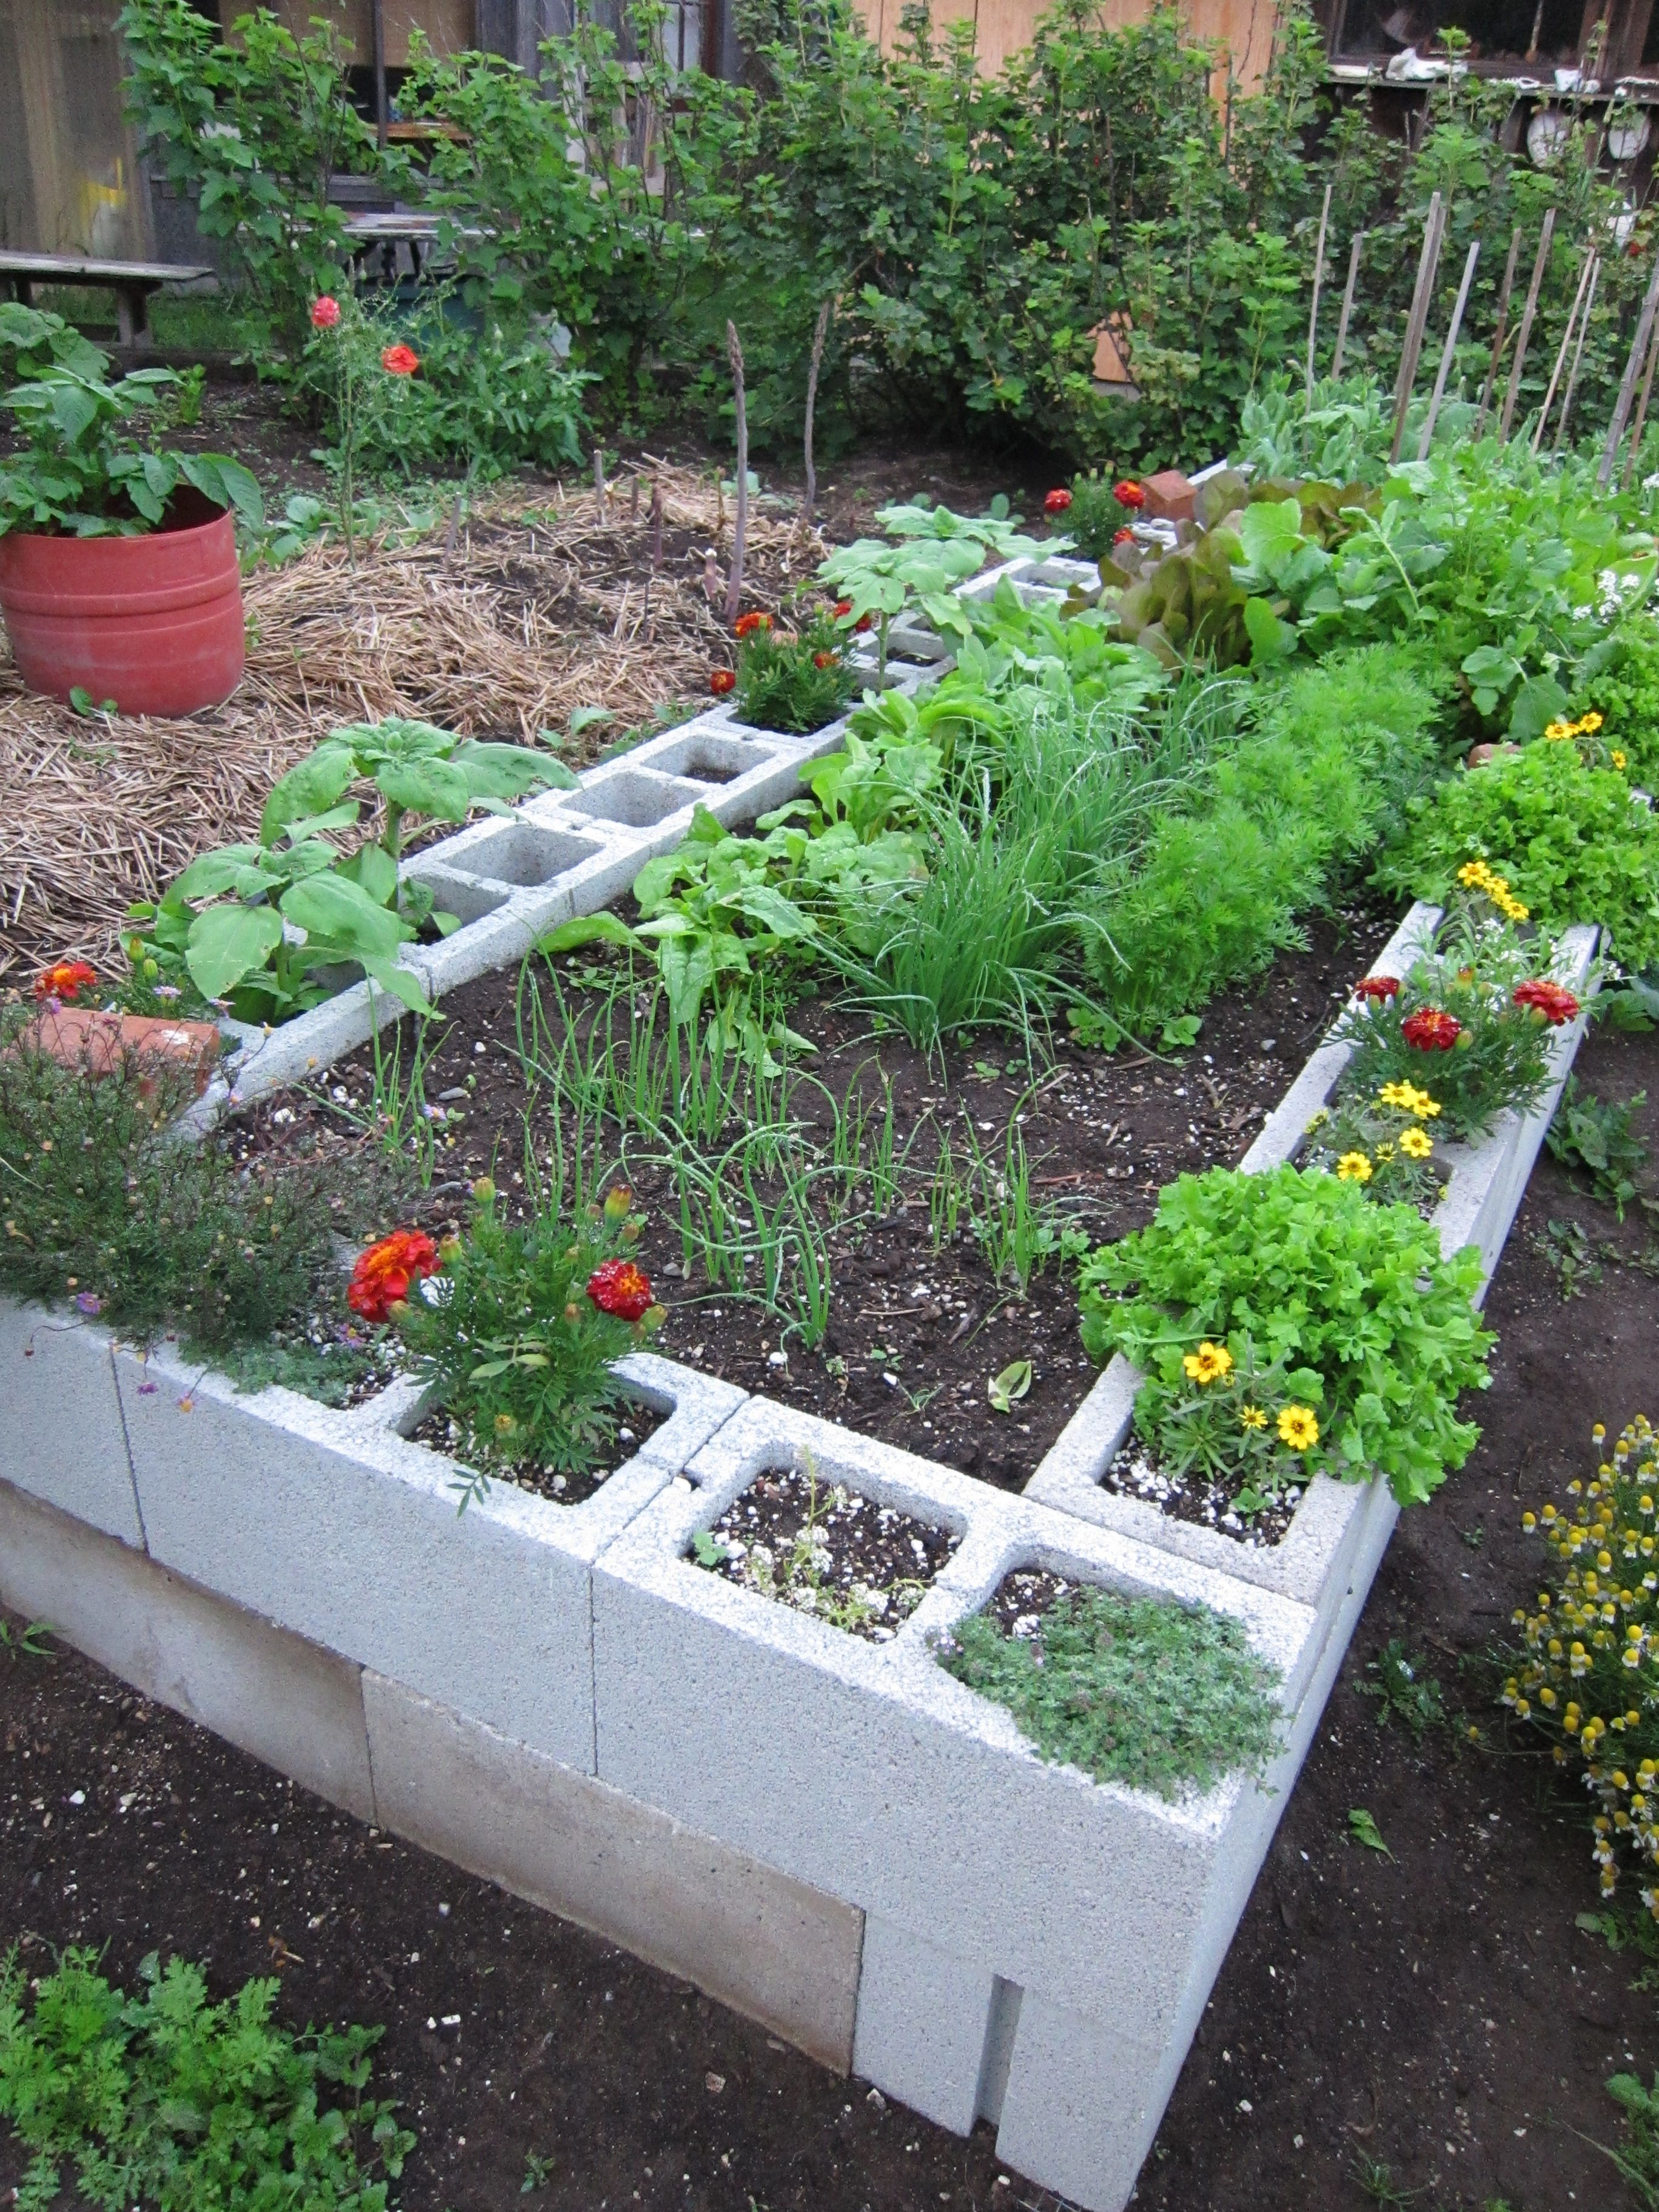 The HalfAcre Homestead Cinder block garden, Garden